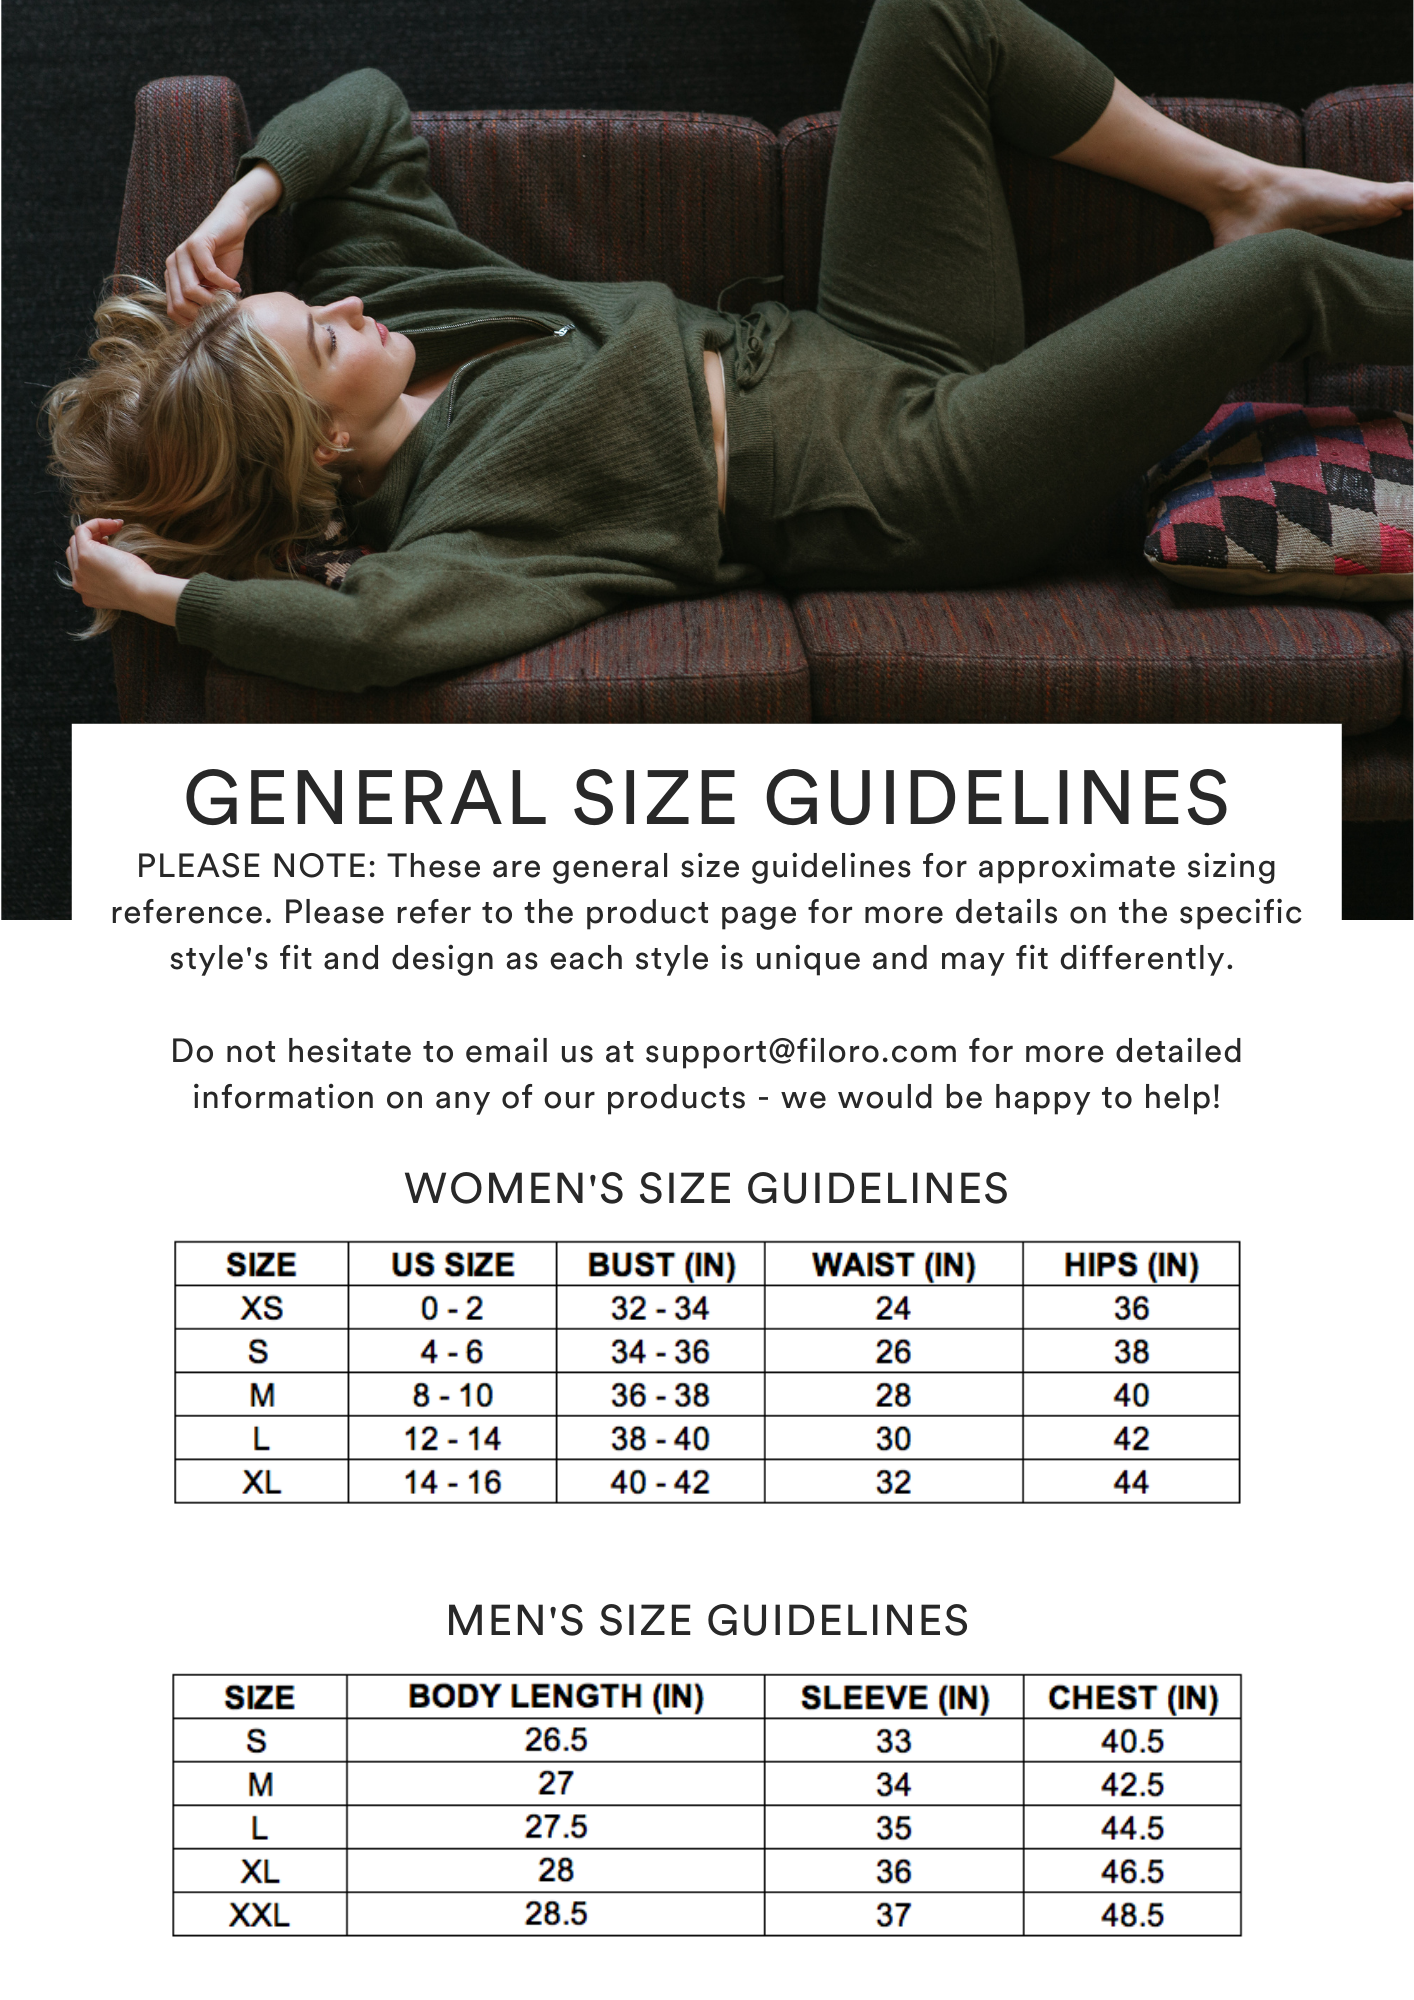 GENERAL SIZE GUIDELINES